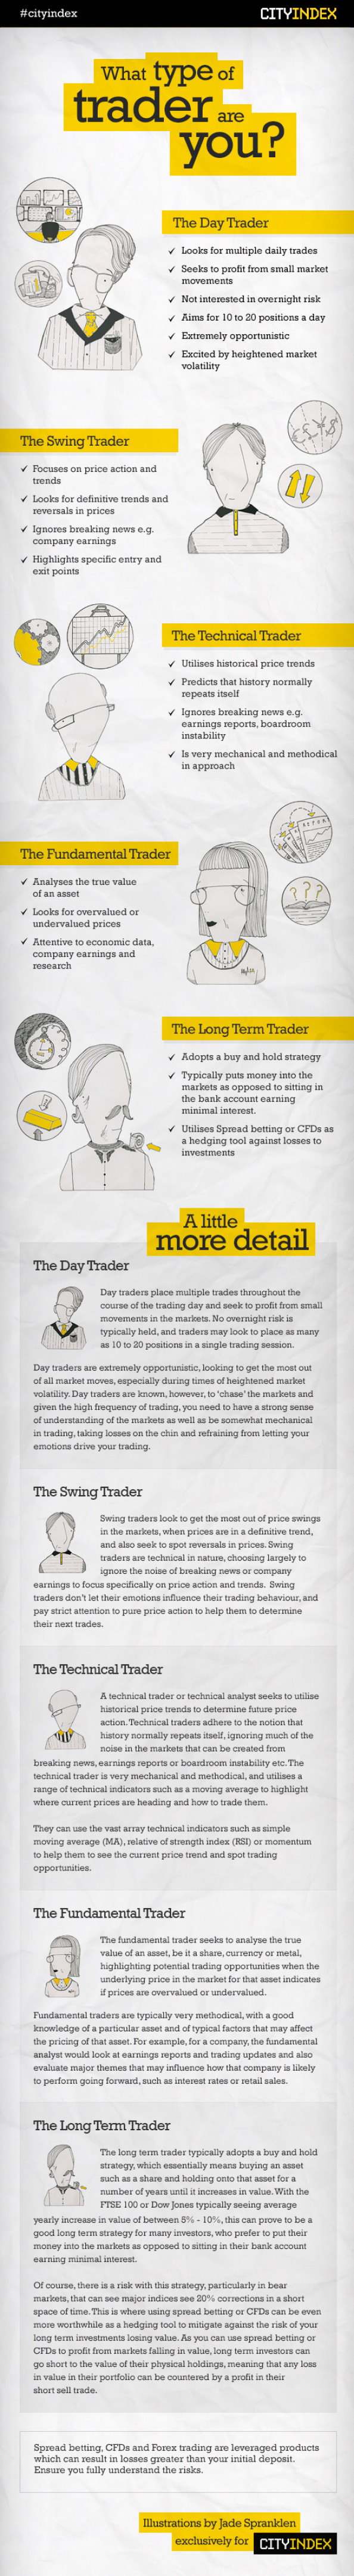 What Type of Trader Are You? Infographic